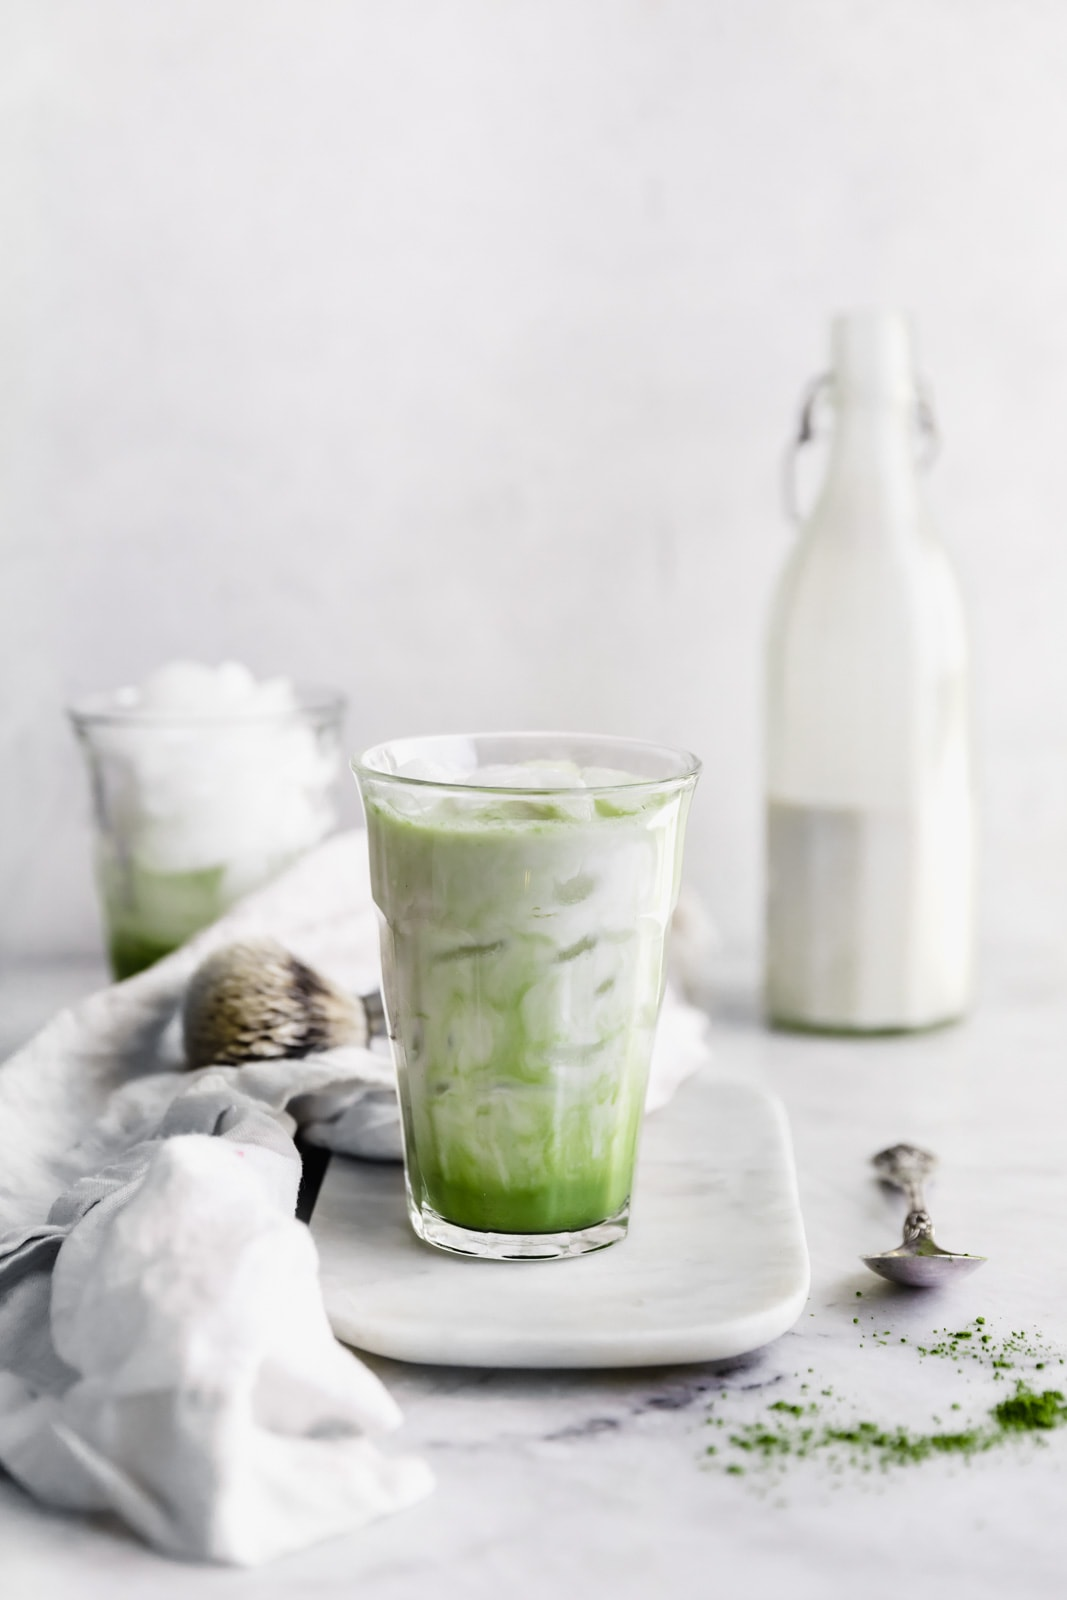 These insta-worthy White Chocolate Matcha Iced Lattes are the perfect afternoon pick-me-up. Power through the rest of the day with this sweet, green, caffeinated treat.